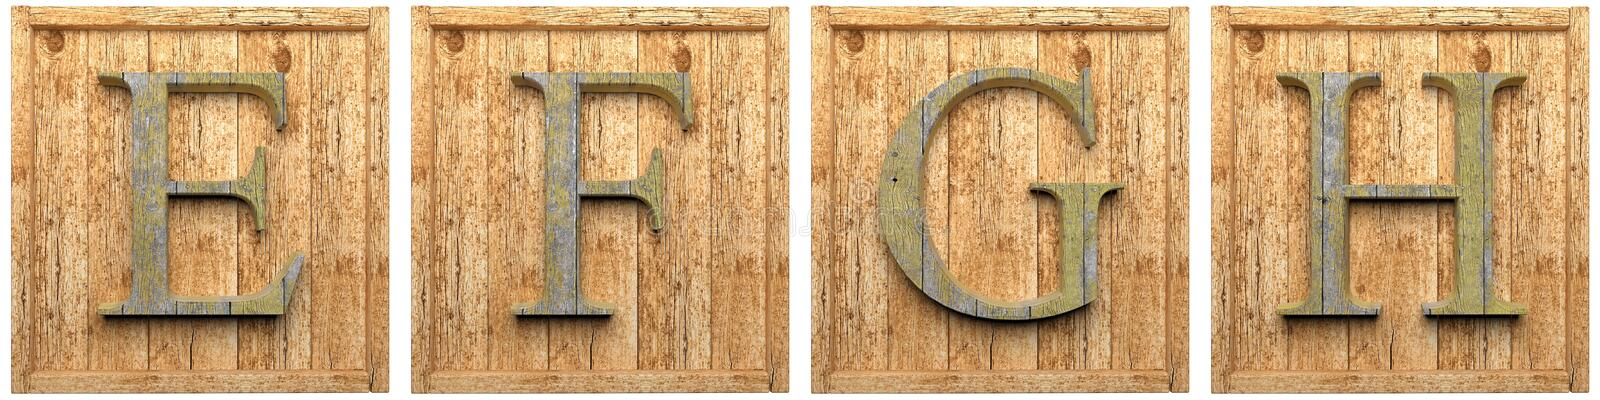 Group of wooden letters E F G H stock illustration